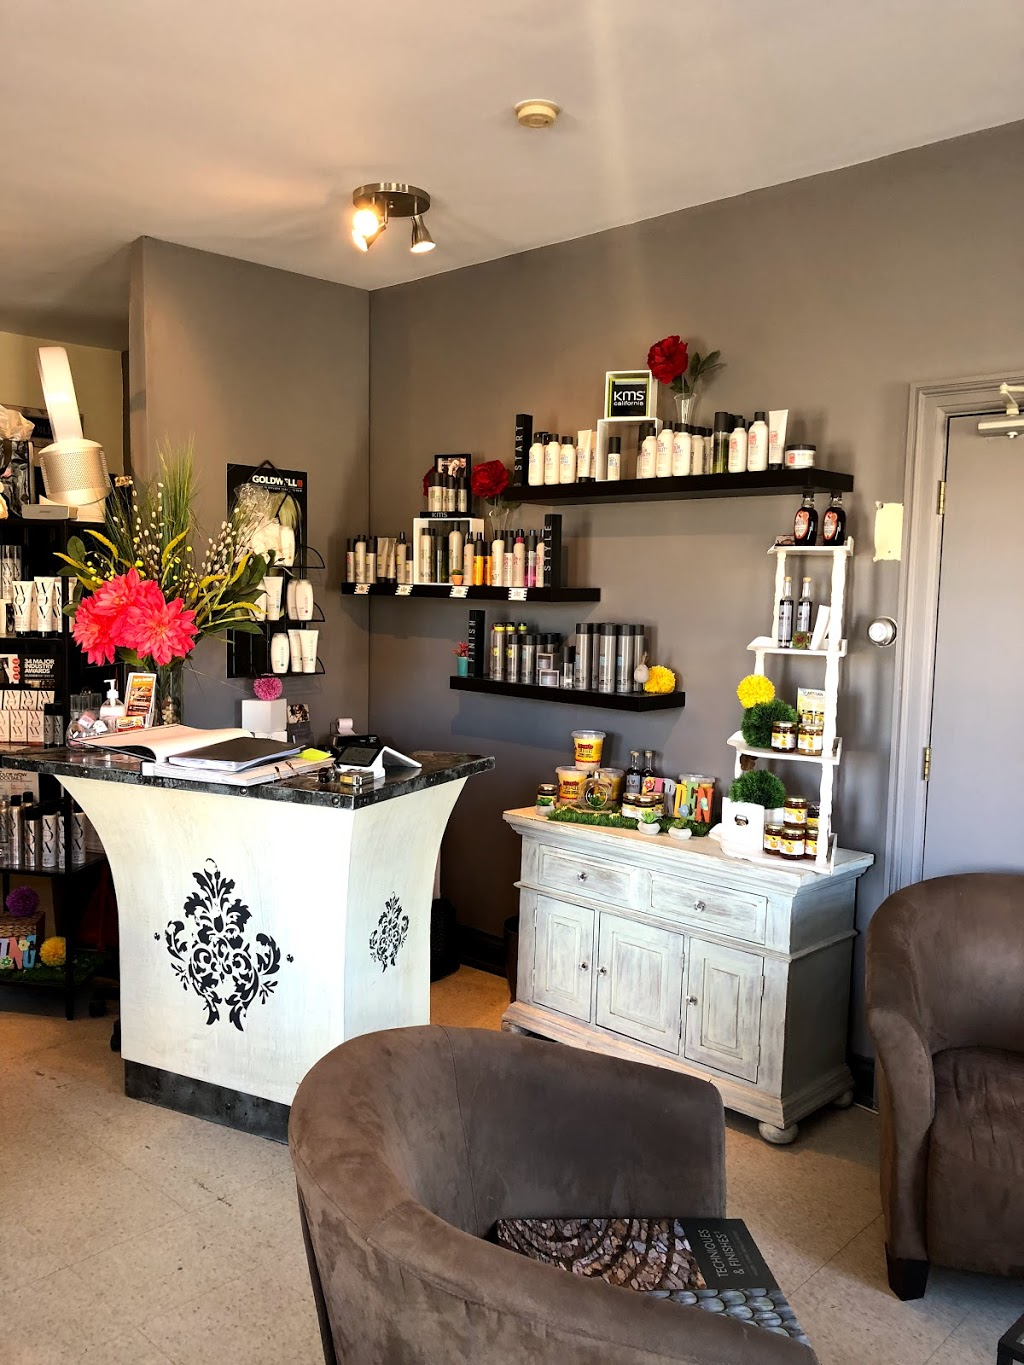 Turner House | hair care | 73 Mill St S, Port Hope, ON L1A 2S8, Canada | 9058850909 OR +1 905-885-0909